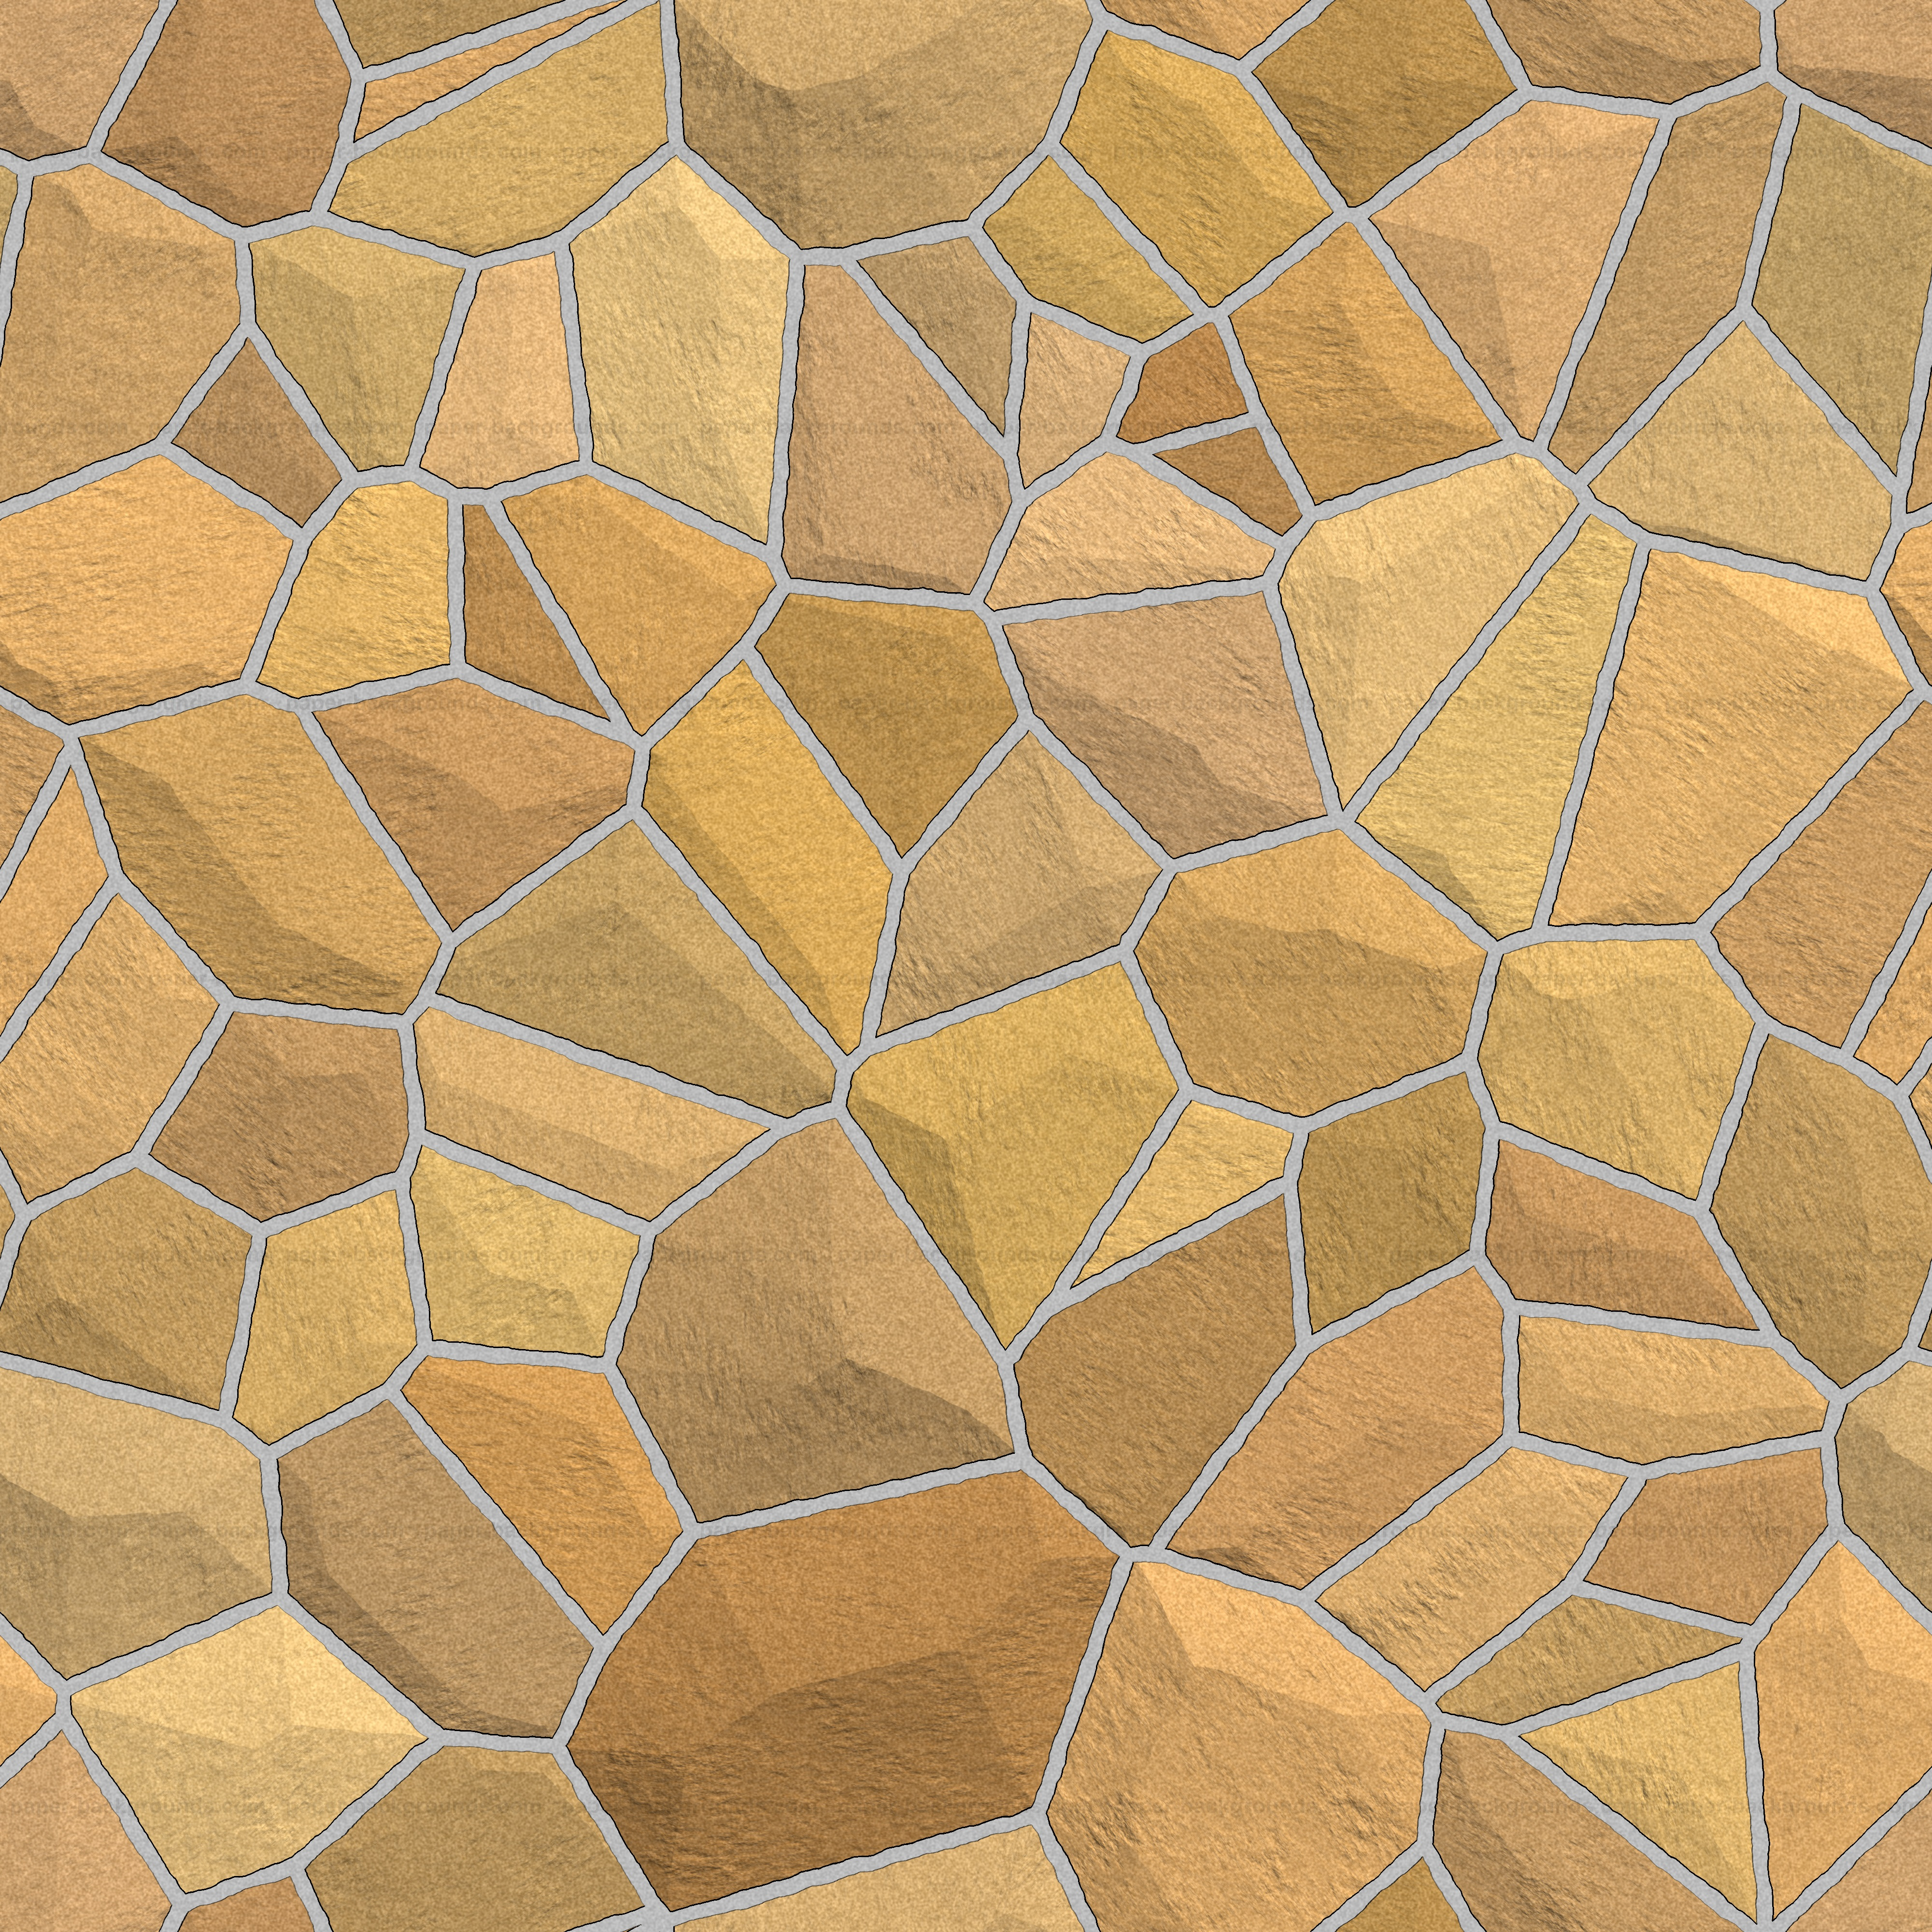 Paper Backgrounds   Seamless Yellow Brown Stone Wall Texture High ...